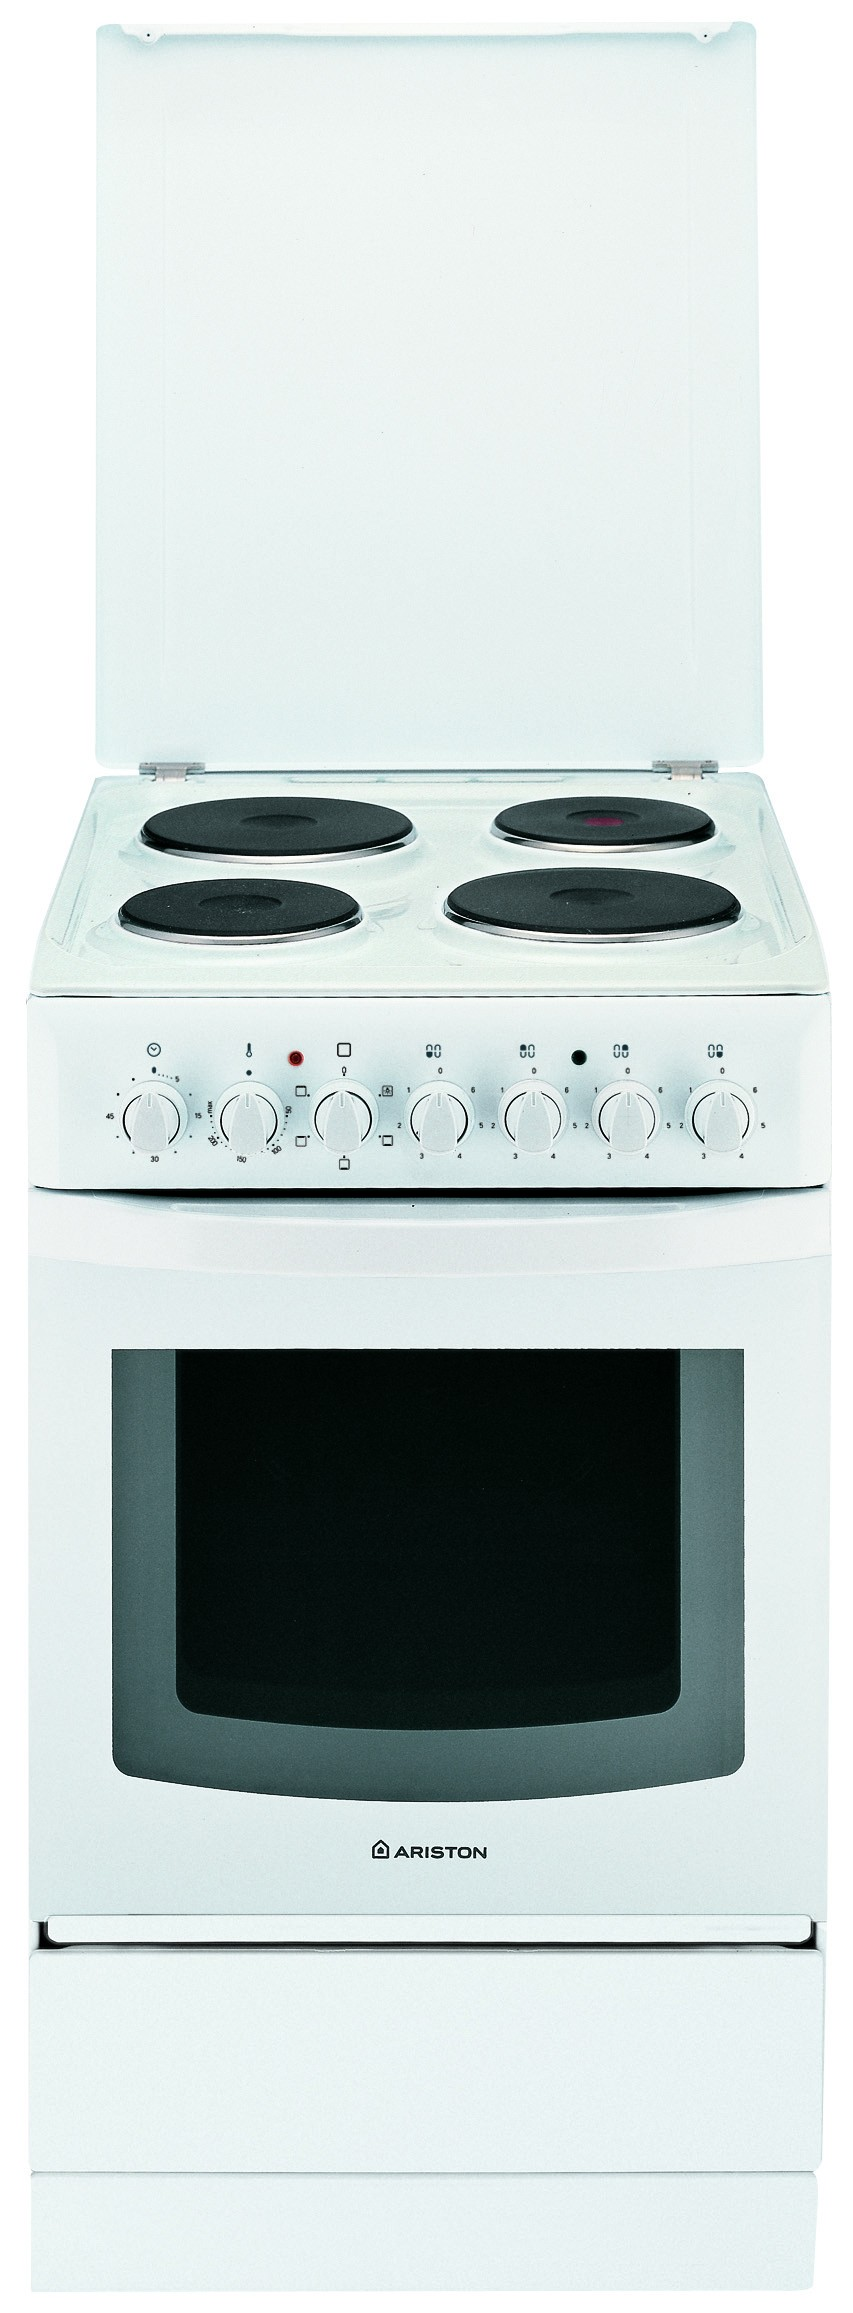 Uncategorized Ariston Kitchen Appliances ariston c30n1 4 plate electric cooker white hotpoint co ke white